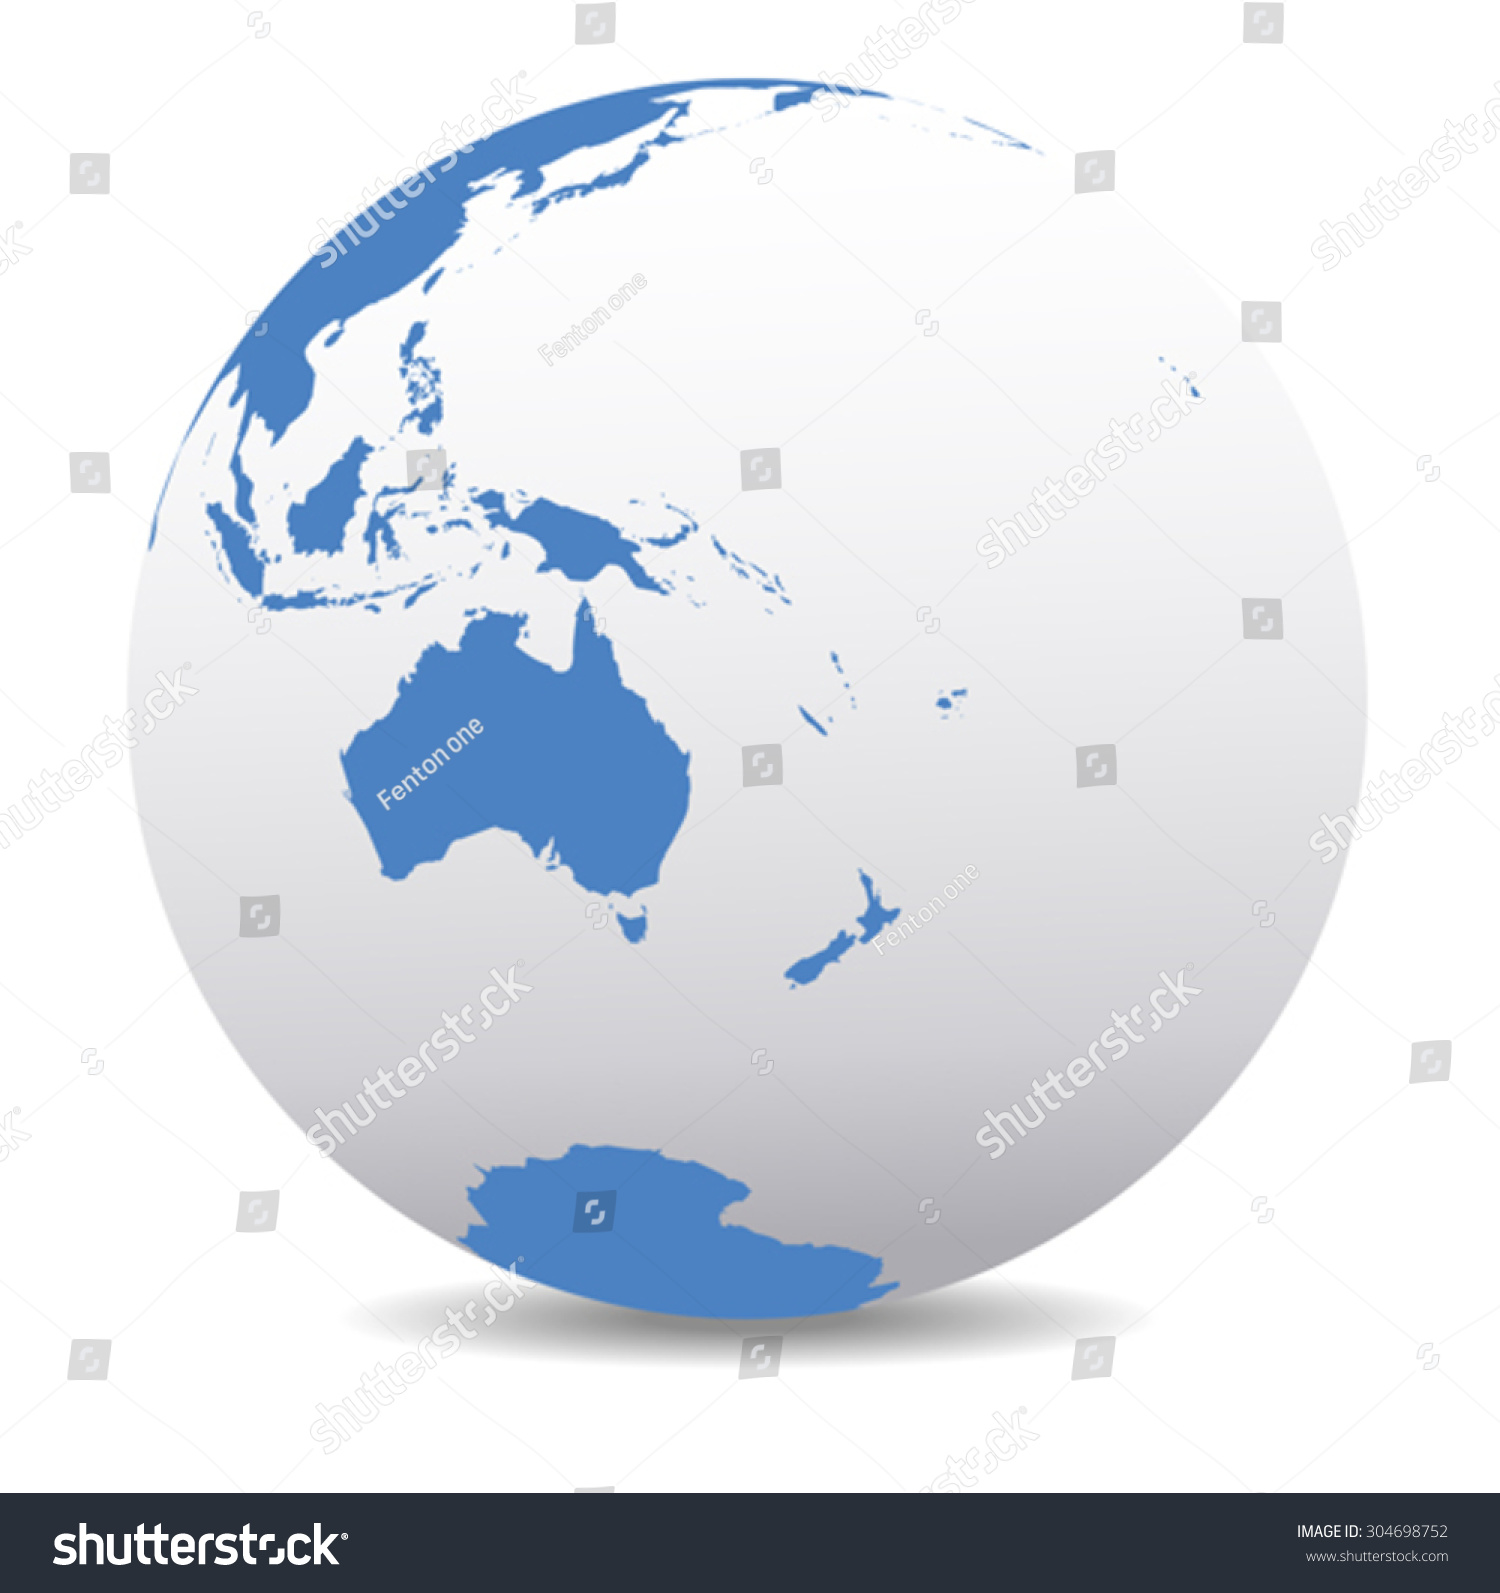 Australia new zealand south pole pacific vectores en stock 304698752 australia new zealand south pole and the pacific ocean vector map icon of gumiabroncs Image collections